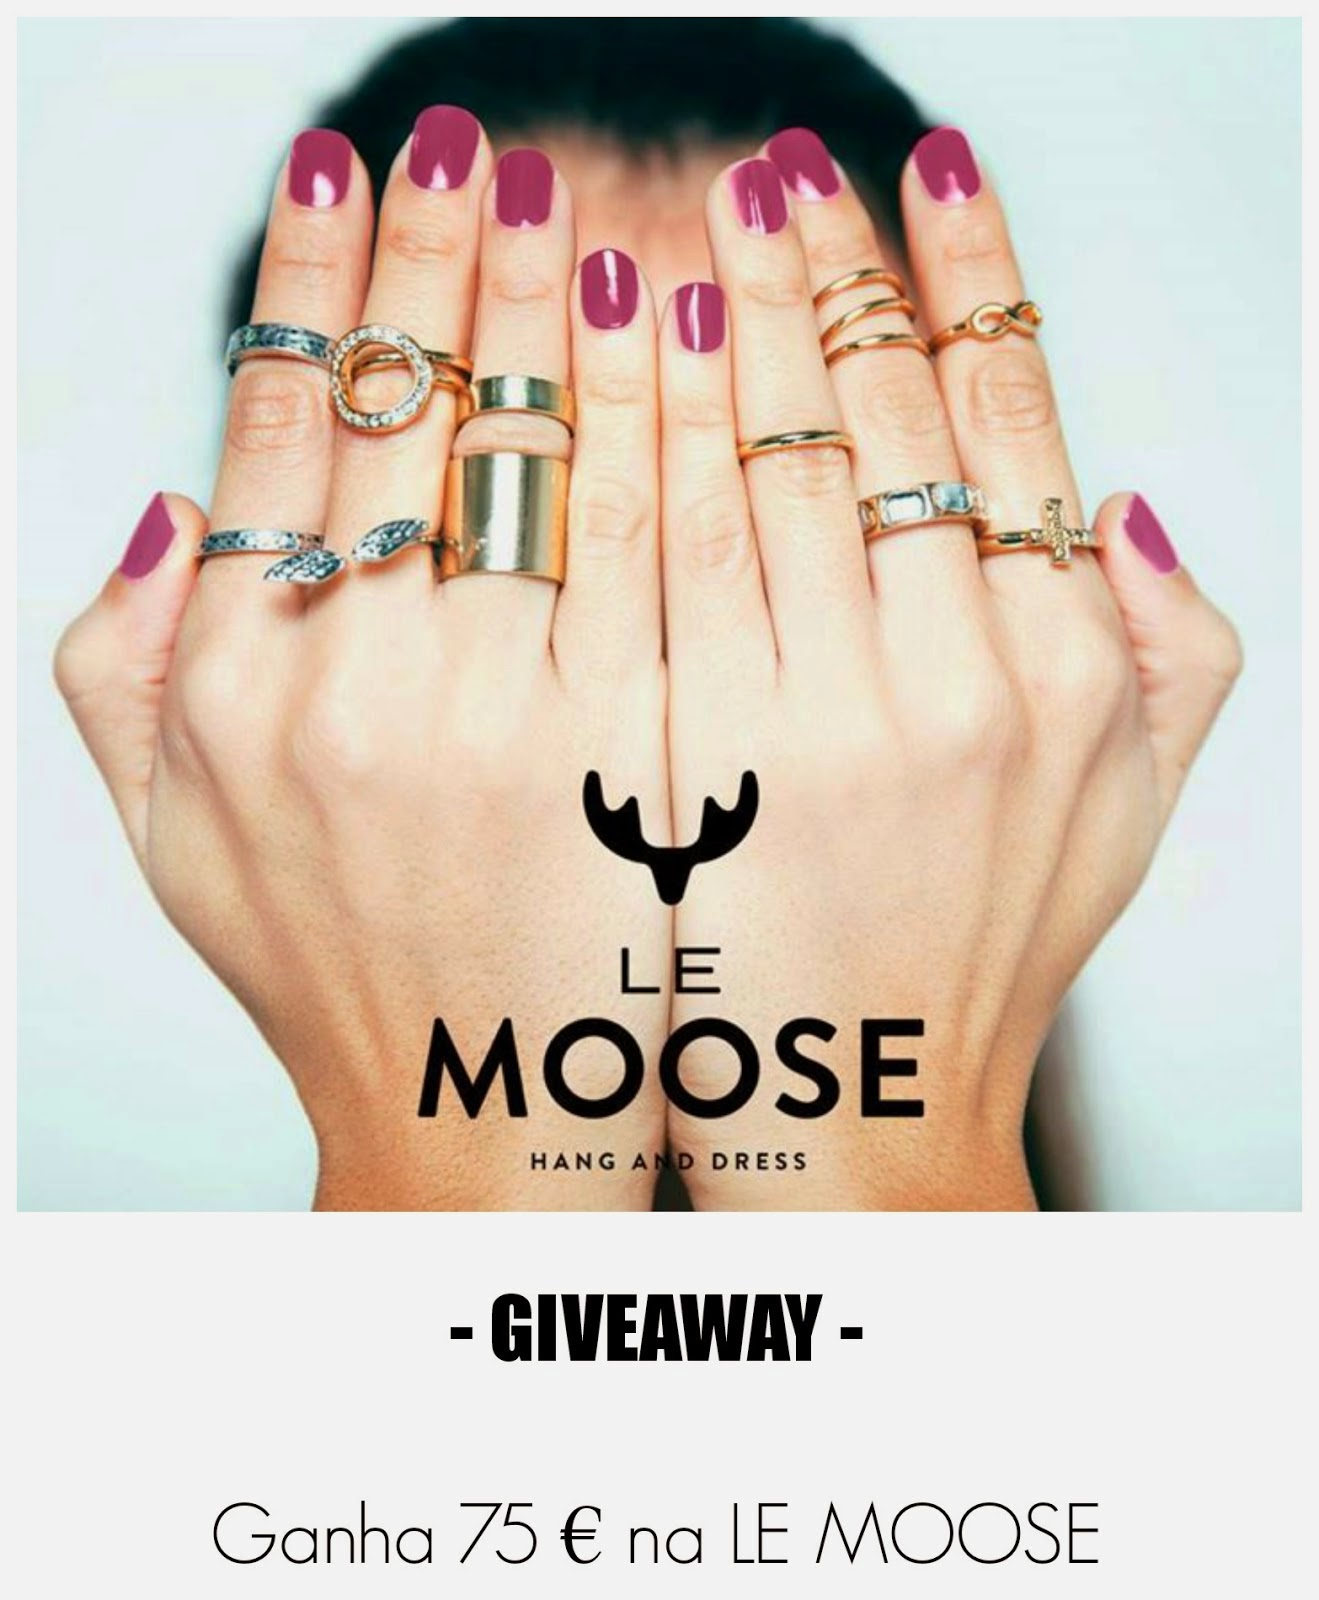 http://xanalicious.blogspot.pt/2014/04/giveaway-le-moose.html